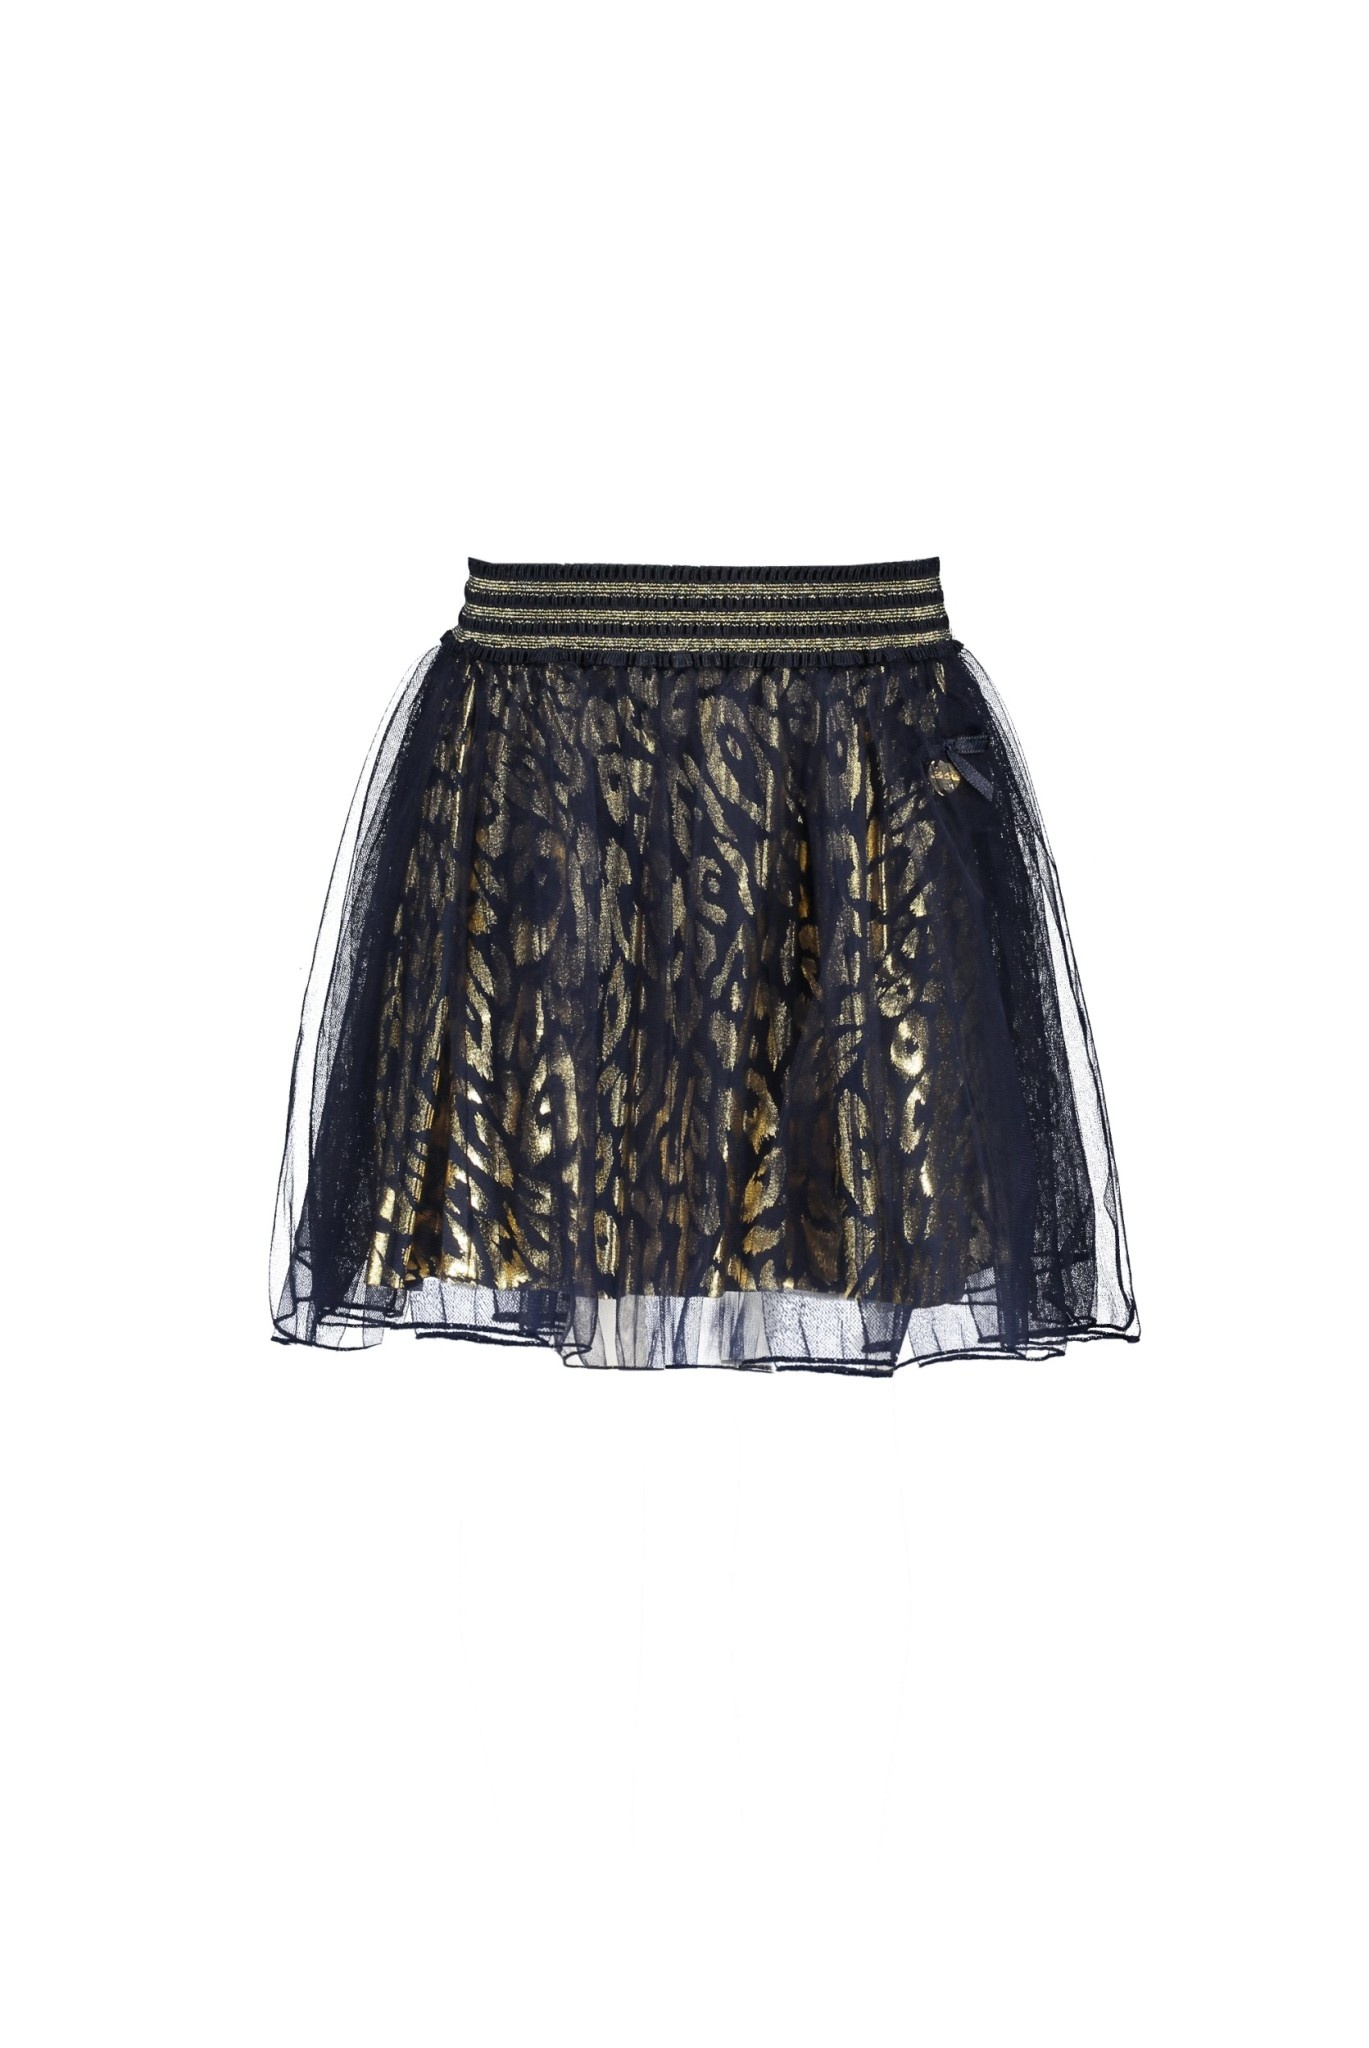 Lechic Le Chic Navy and Gold Skirt with Overlay